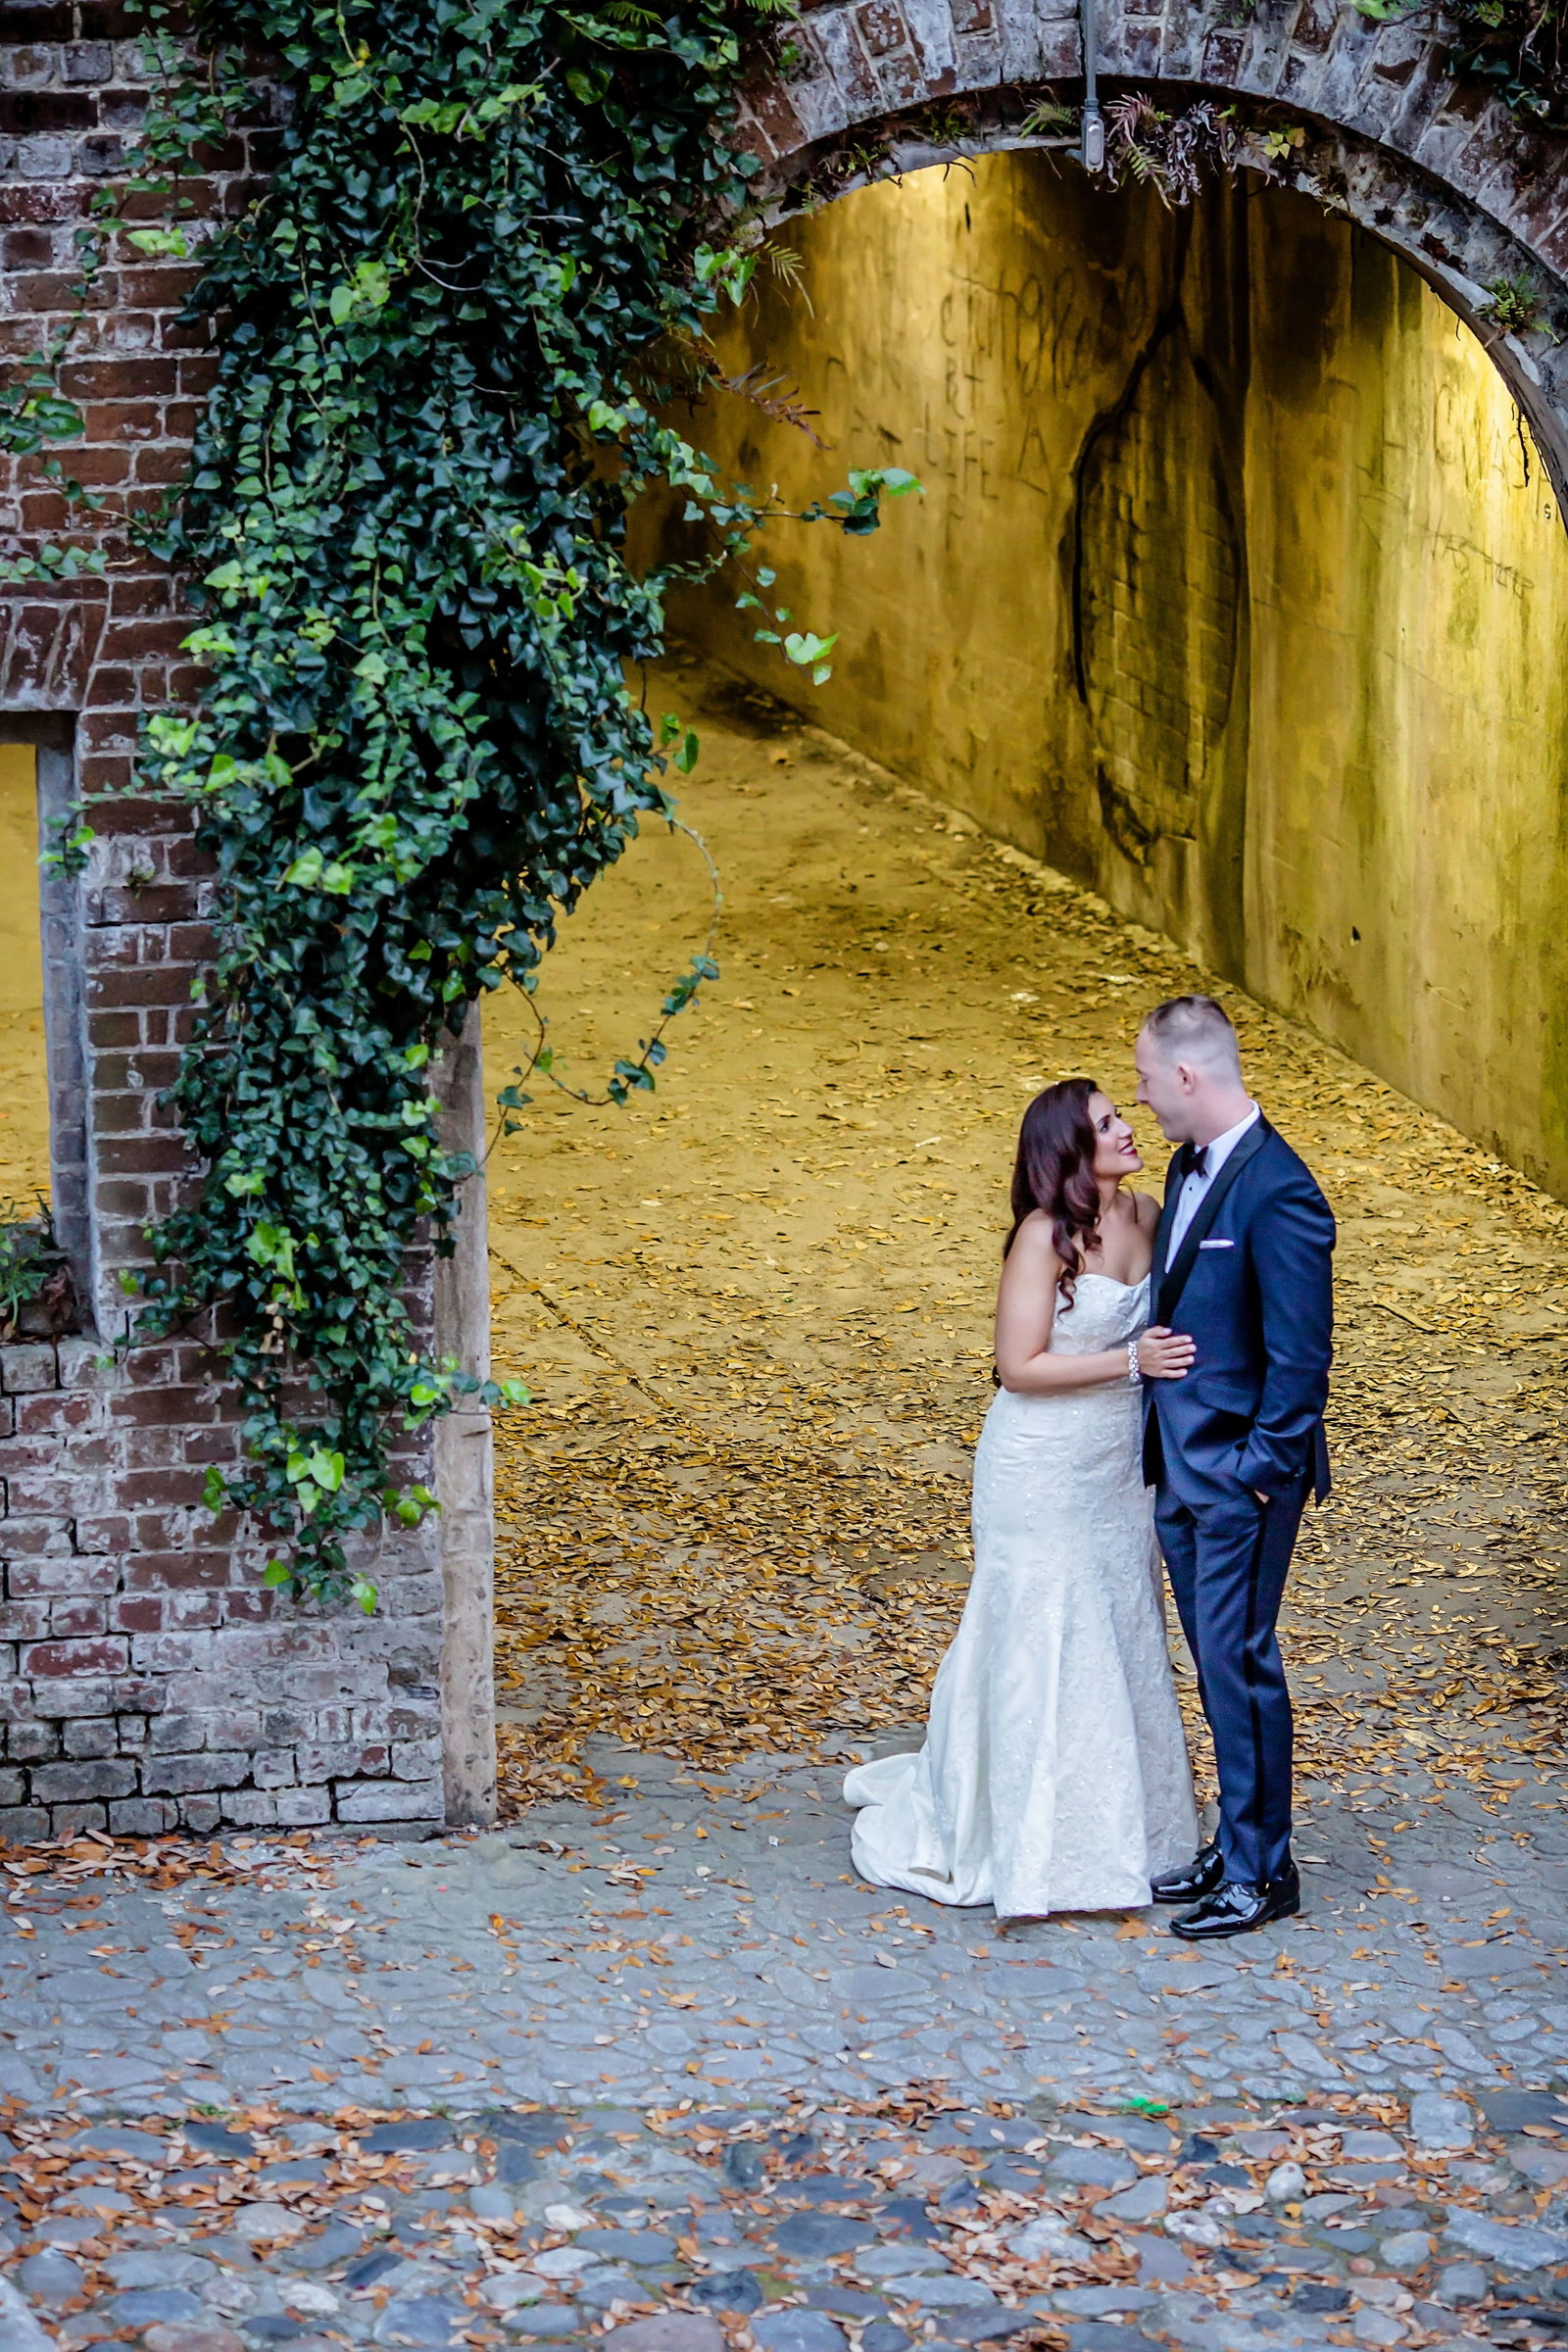 Savannah GA Wedding, Bobbi Brinkman Photography